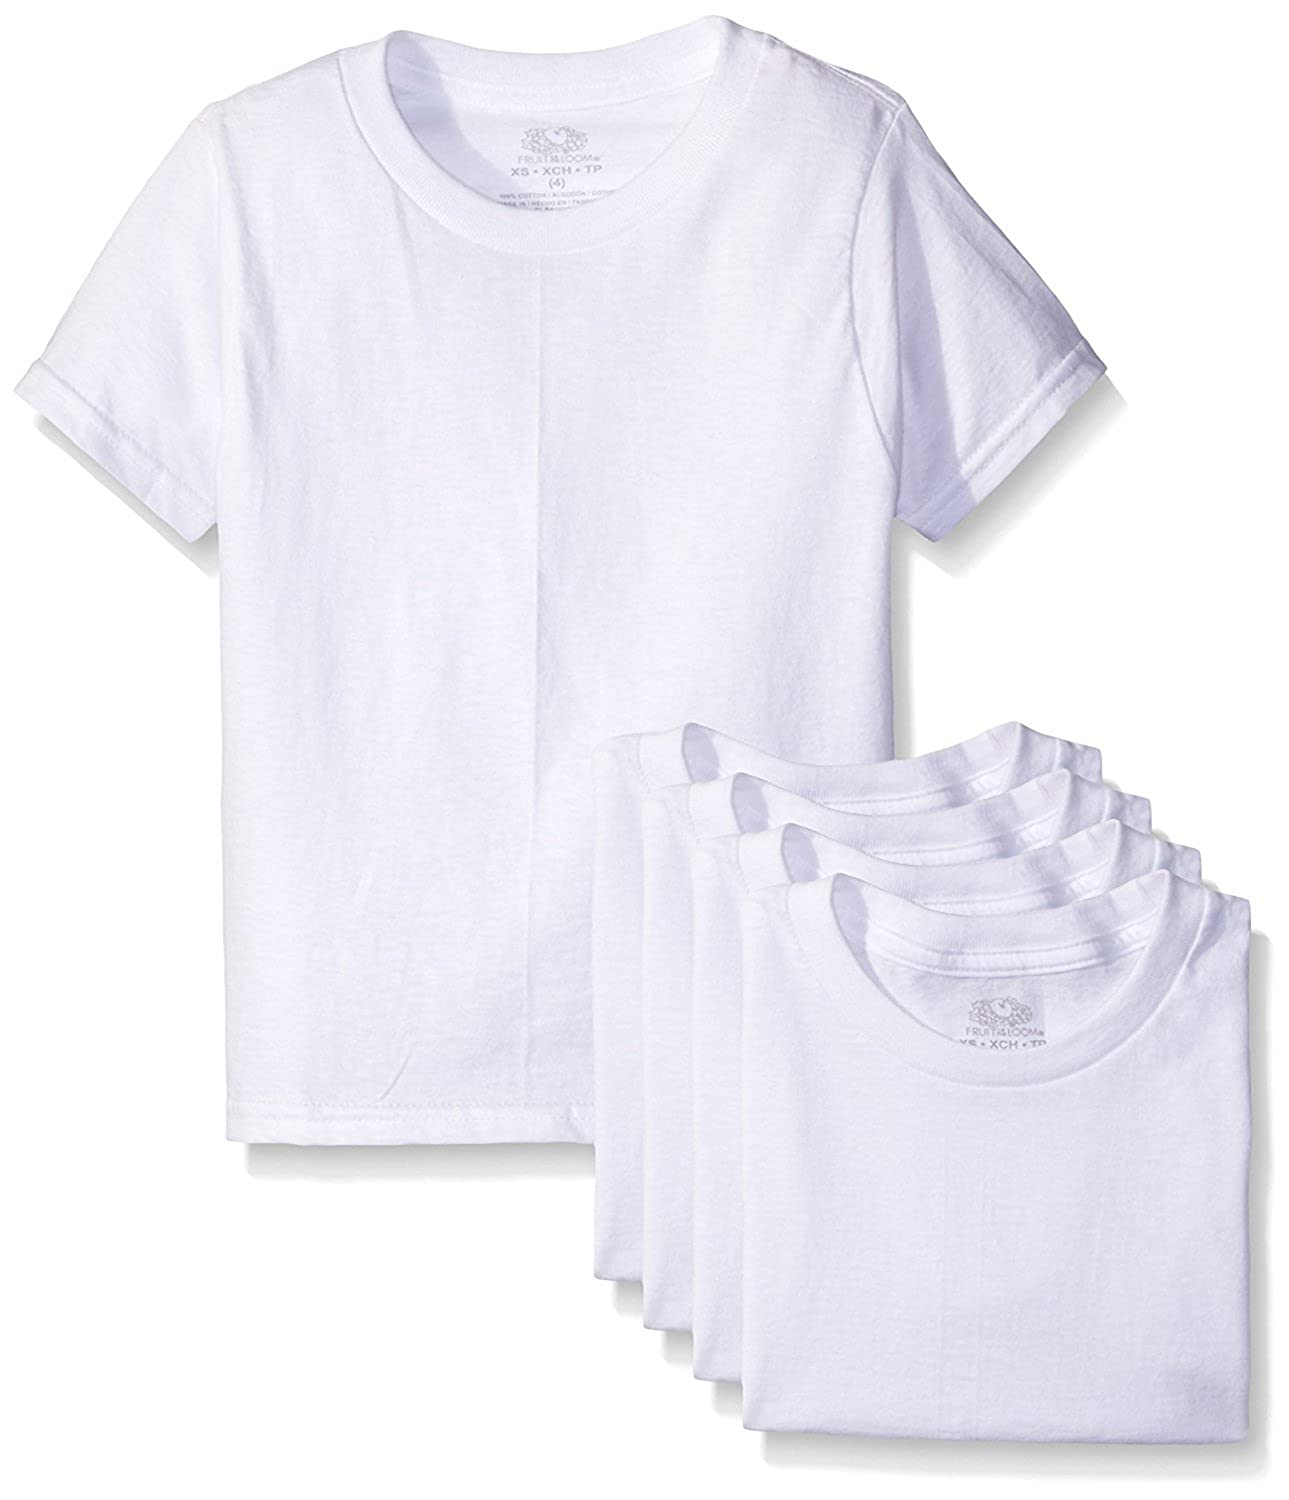 Fruit Of The Loom Little Boys' Crew Tee Five-Pack (Pack Of 5) (White, 3T)